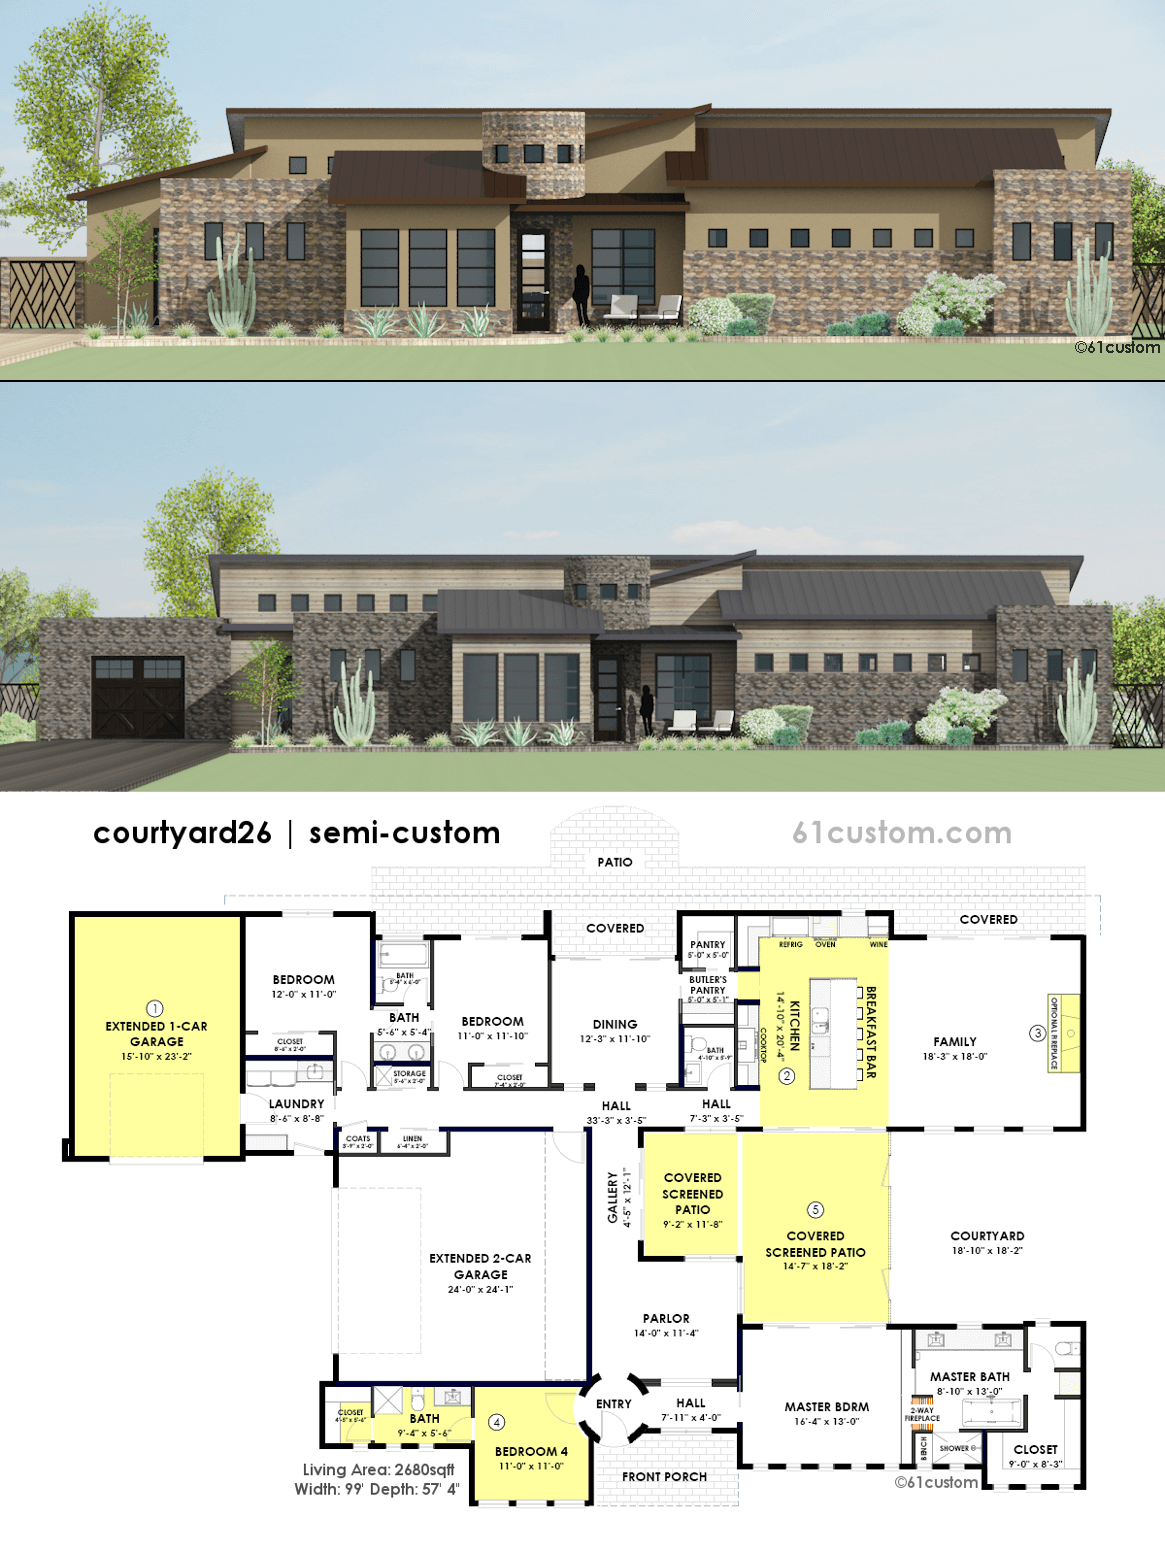 Contemporary side courtyard house plan 61custom for Custom home building plans